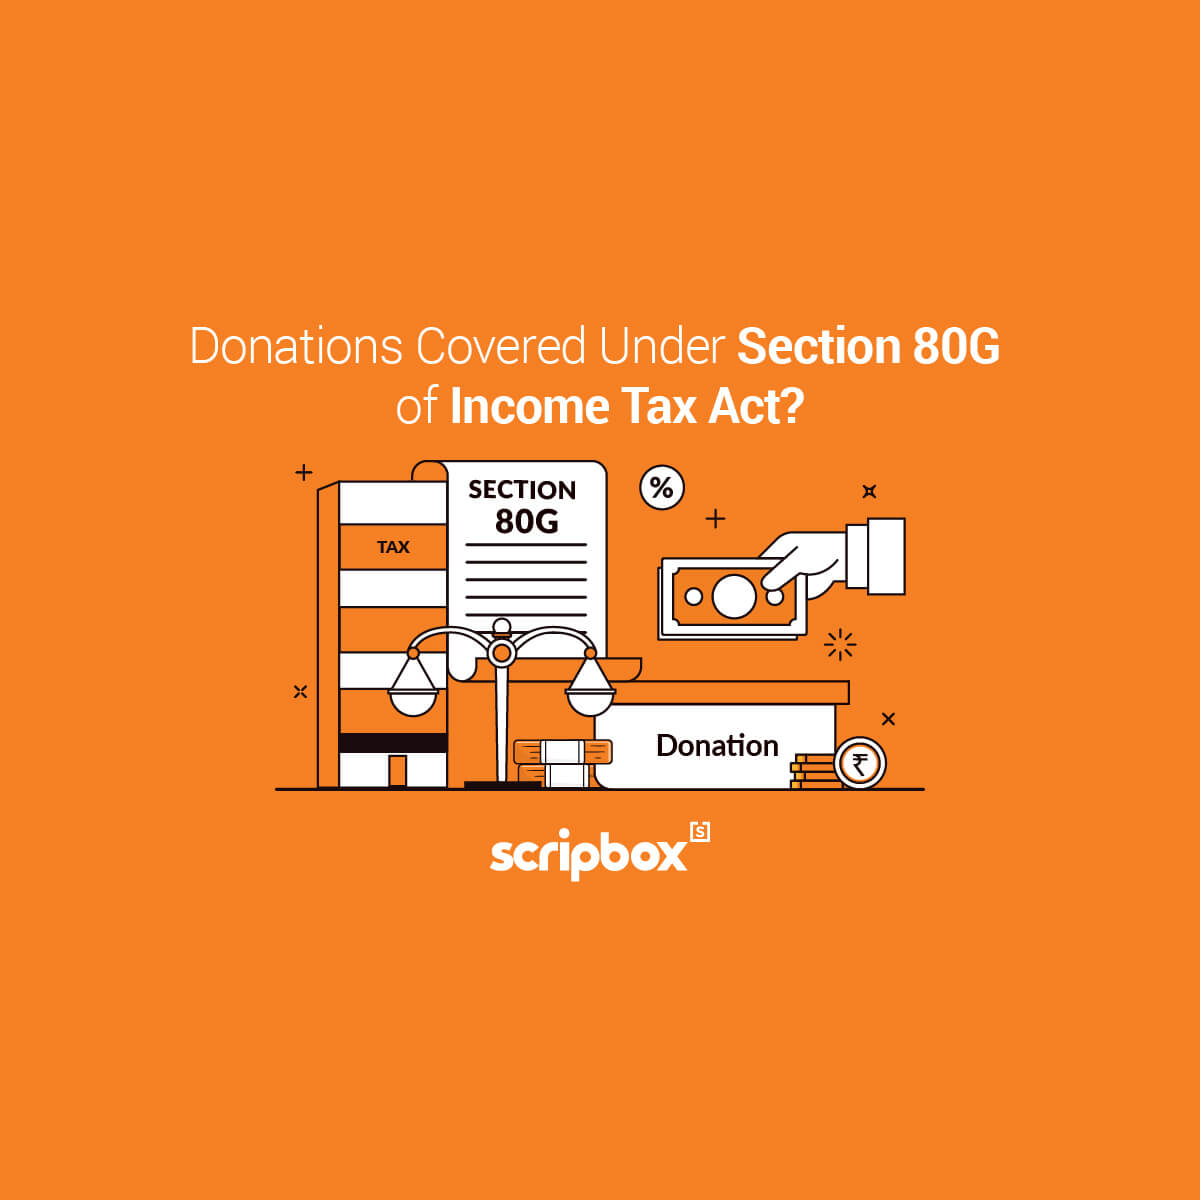 section 80g of income tax